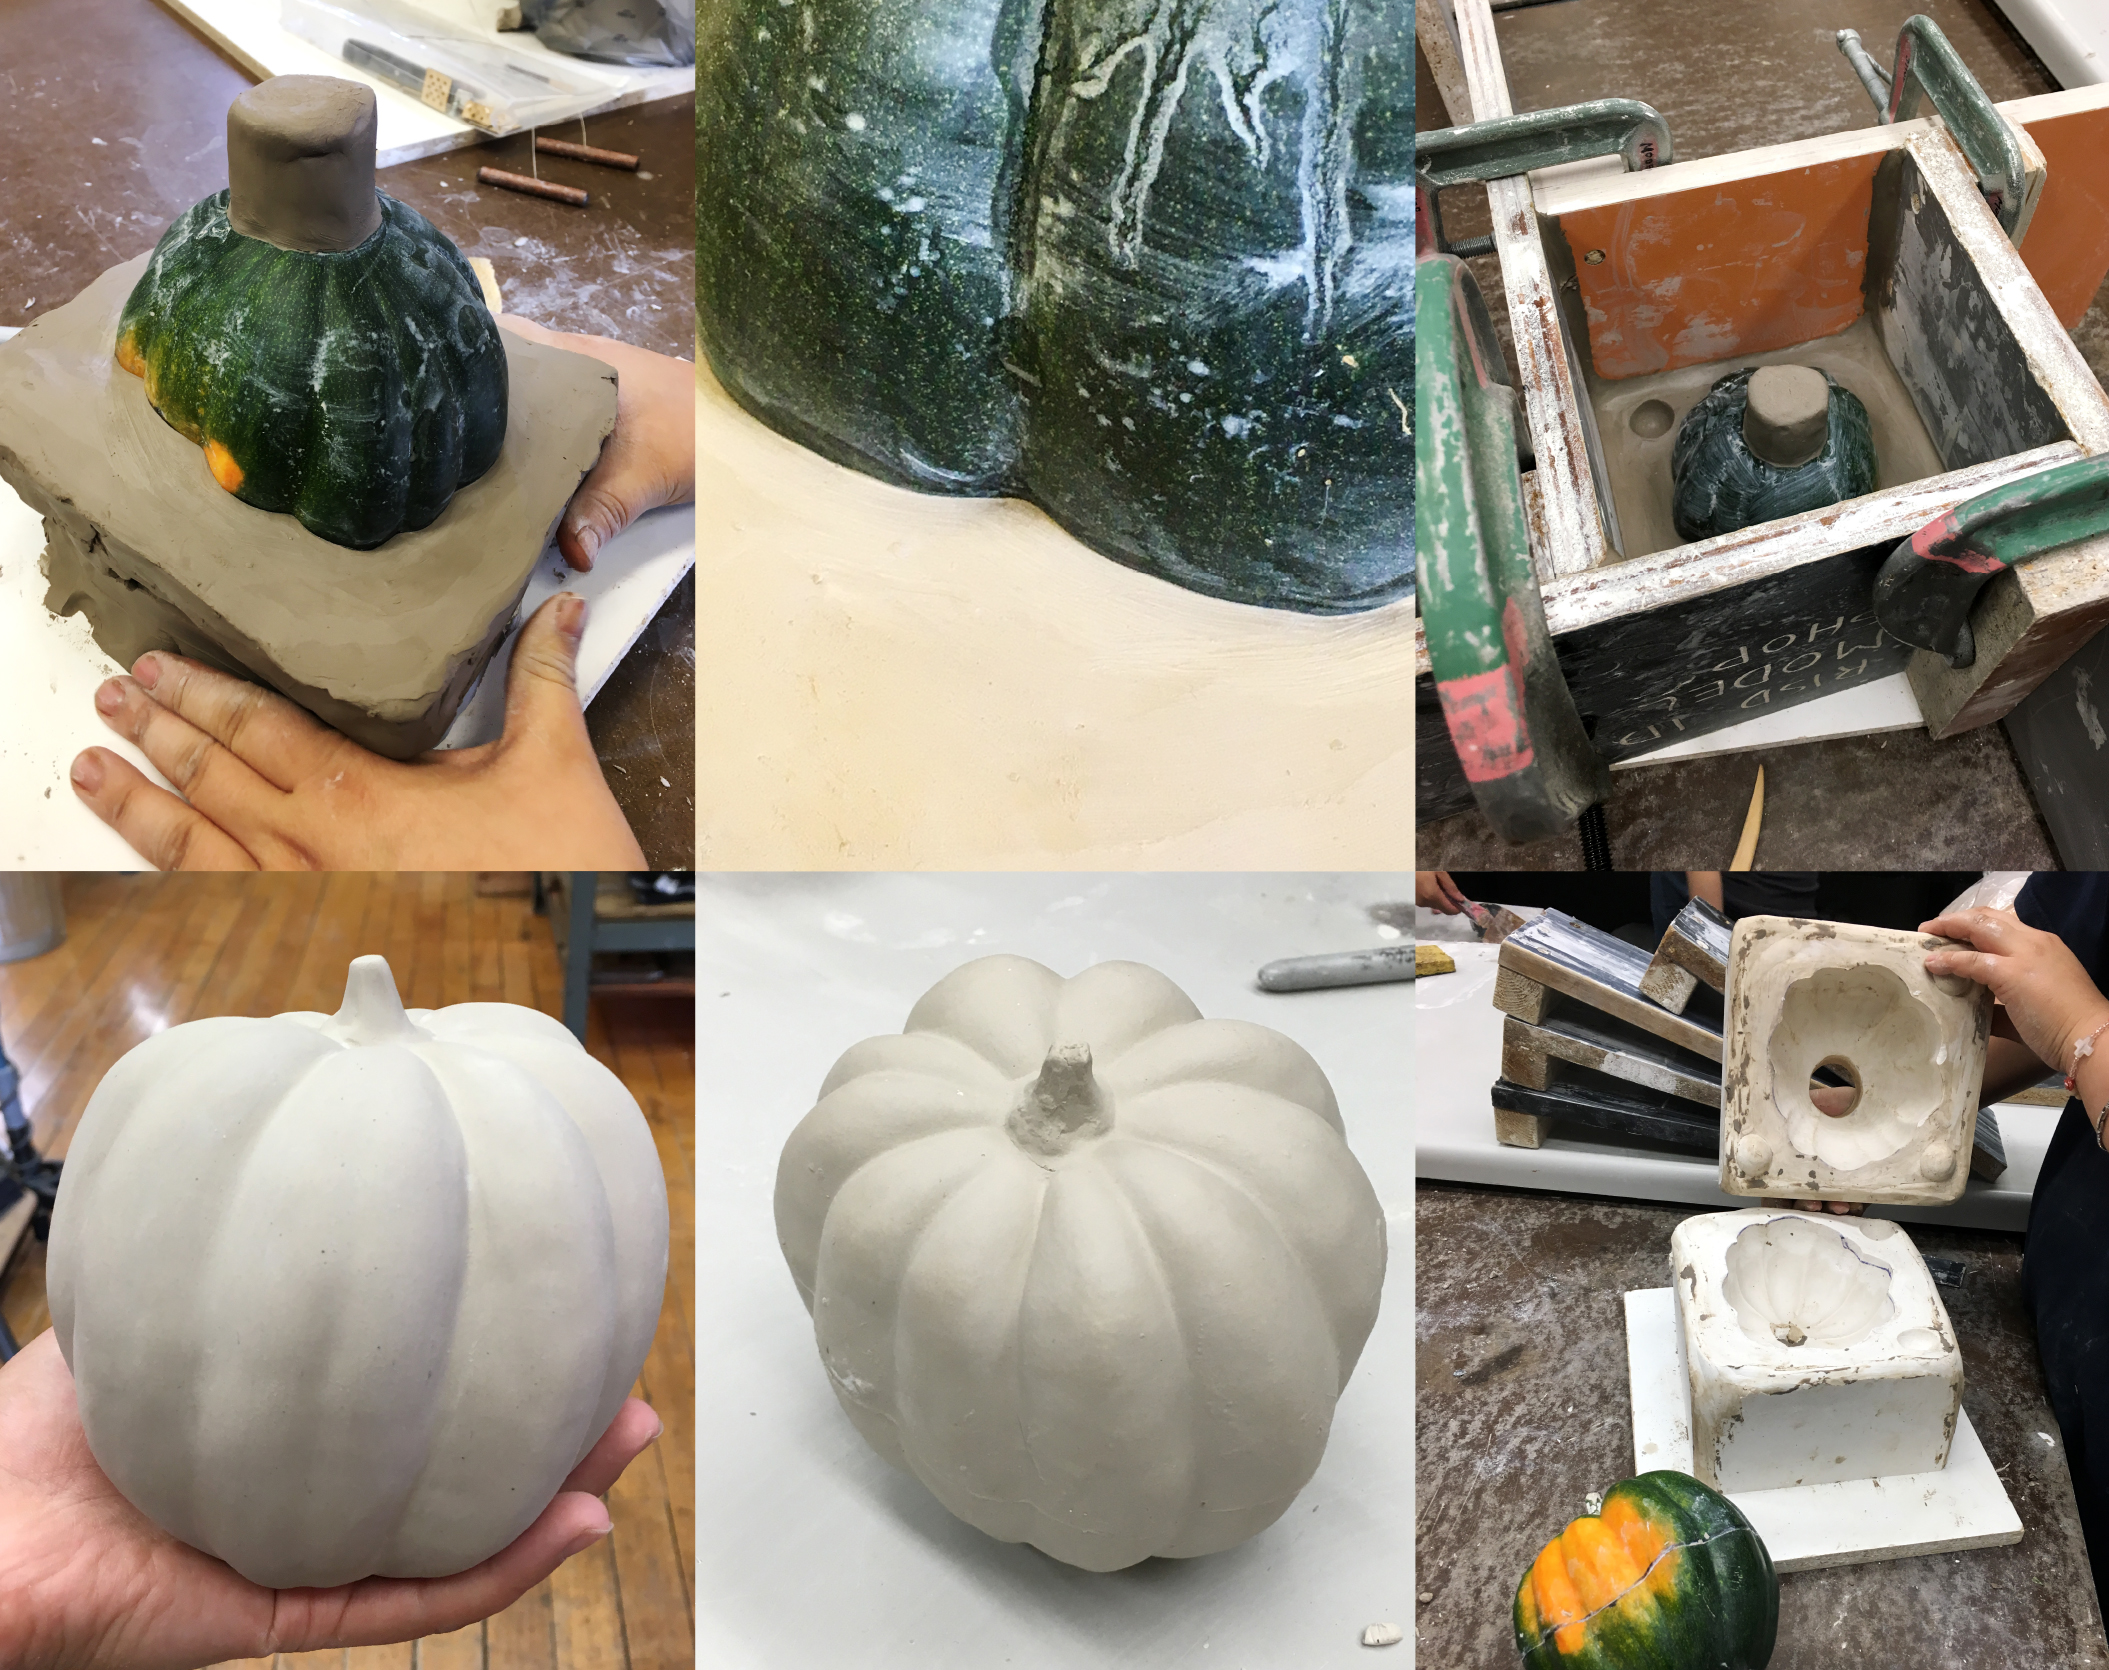 Clockwise from top left: Building up the clay base and pour gate for the first half of the mold pour, creating a clean edge between the clay body and the vegetable, setup for the first mold pour, two mold halves completed, first slipcast squash with seamline, cast squash ready for bisque fire